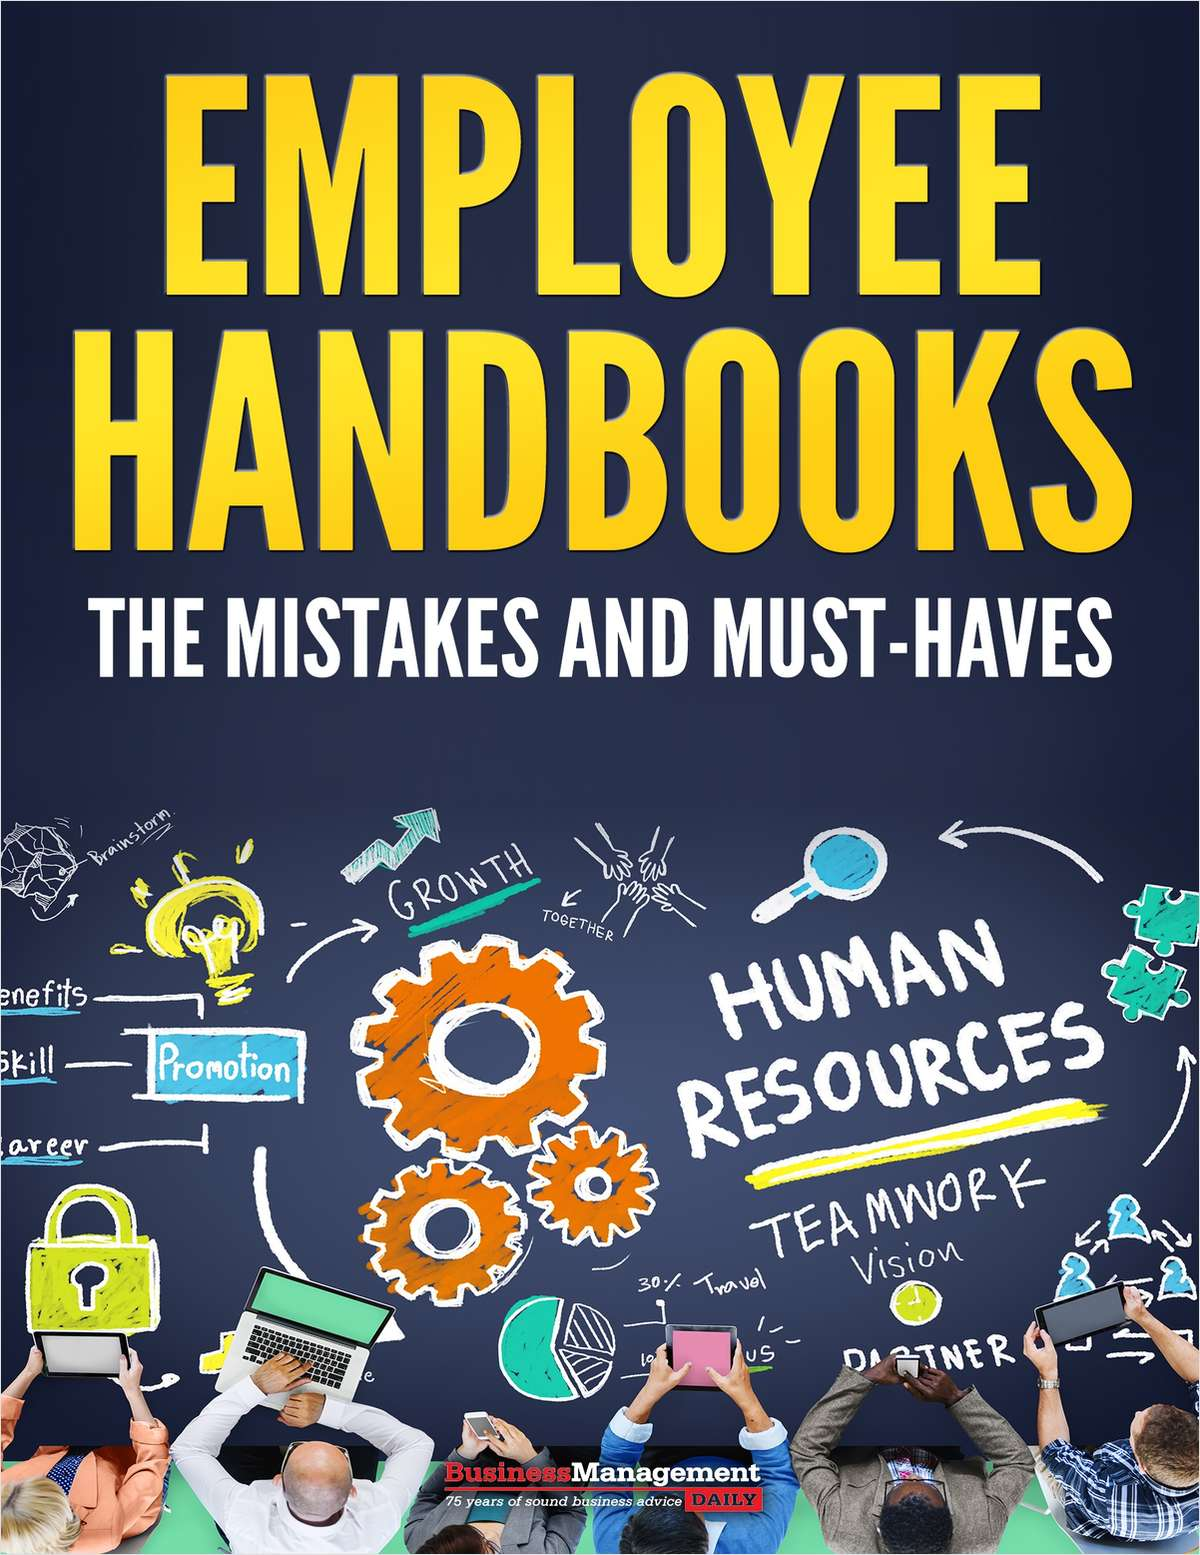 Employee Handbooks: The Mistakes and Must-Haves